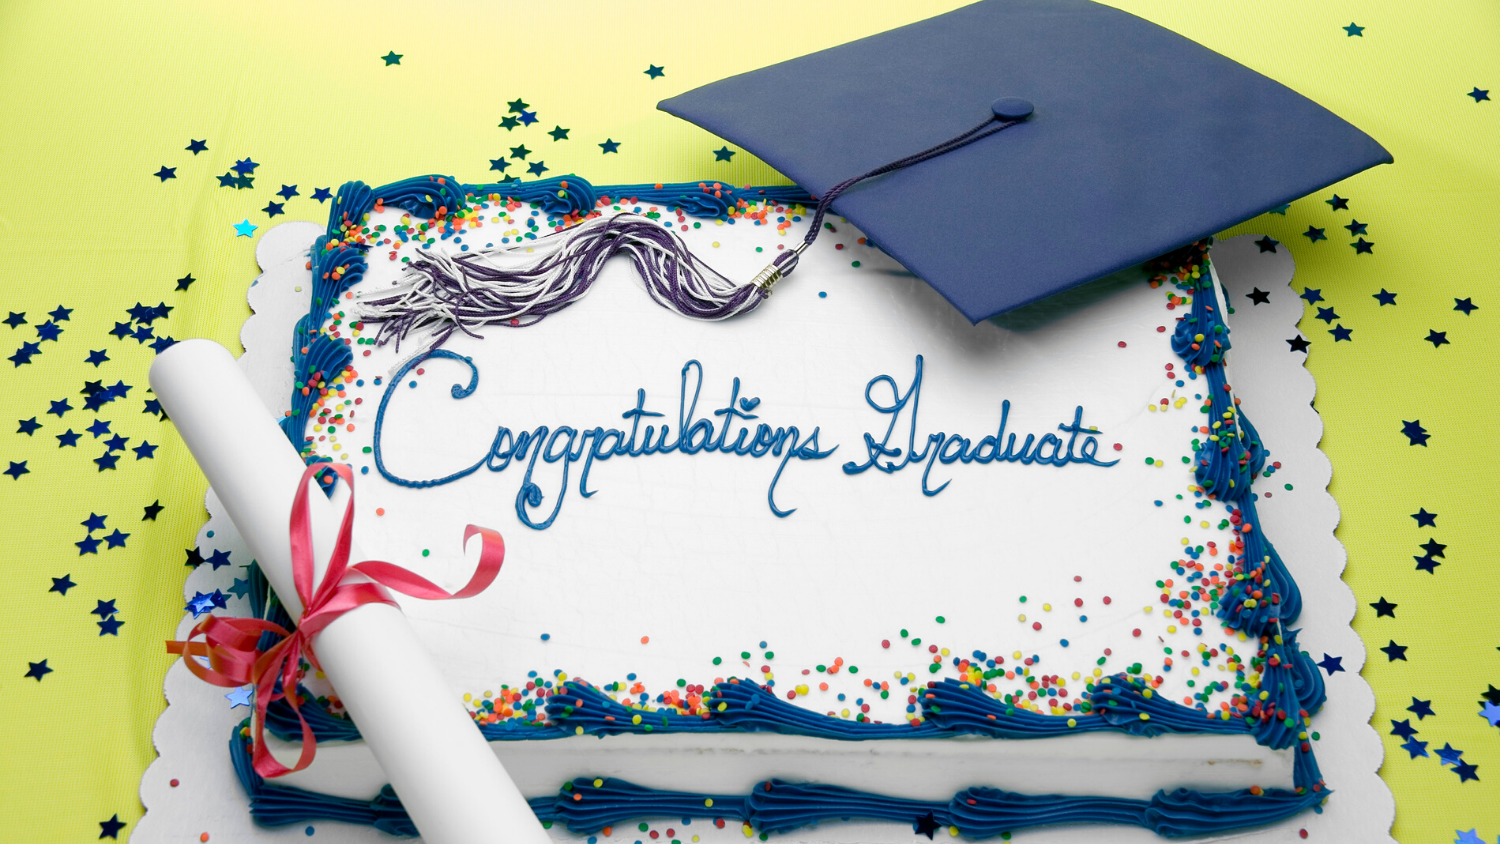 a sheet cake with congratulations graduate writing